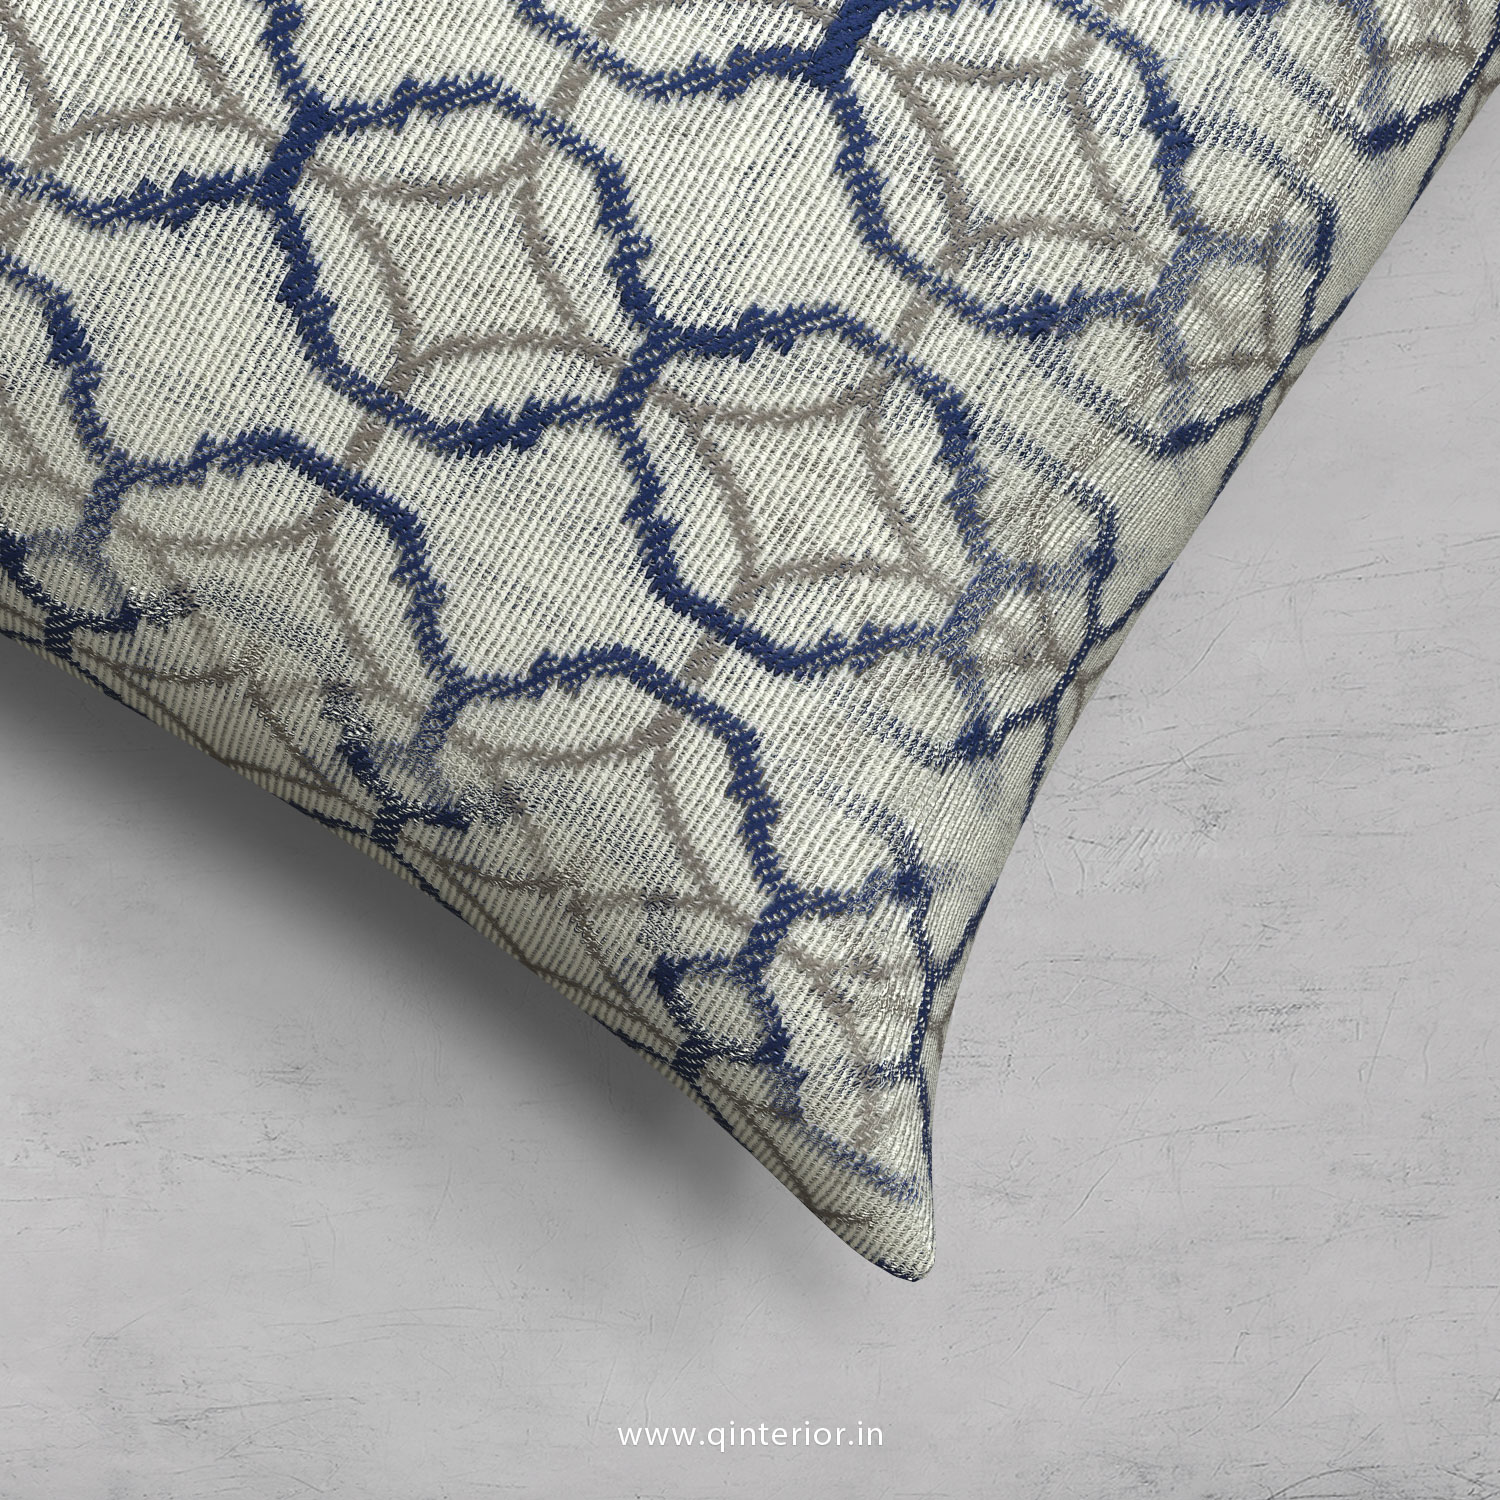 Cushion With Cushion Cover in Jacquard- CUS001 JQ19